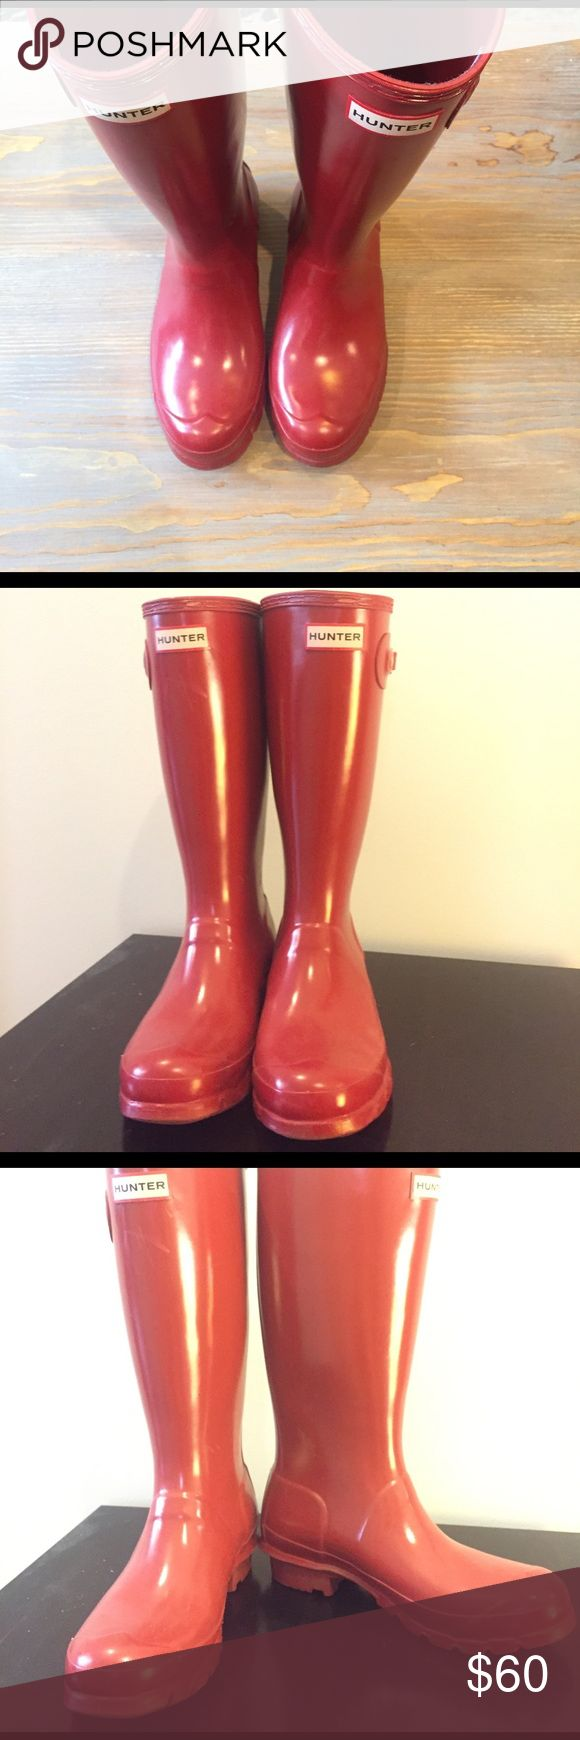 "Red Hunter rain Boots True red. I am super short so I bought a kids size 5 (for adult 7). I have small calves so they fit great, and they are not super tall- just below my knees (the tall ones did not fit me as a petite person). They are gently loved and in good shape. 13"" tall from heel. The back of the boots have little silver reflectors on them, as they do for all children sizes. I am 5'0 for reference on height. Hunter Shoes Winter & Rain Boots"